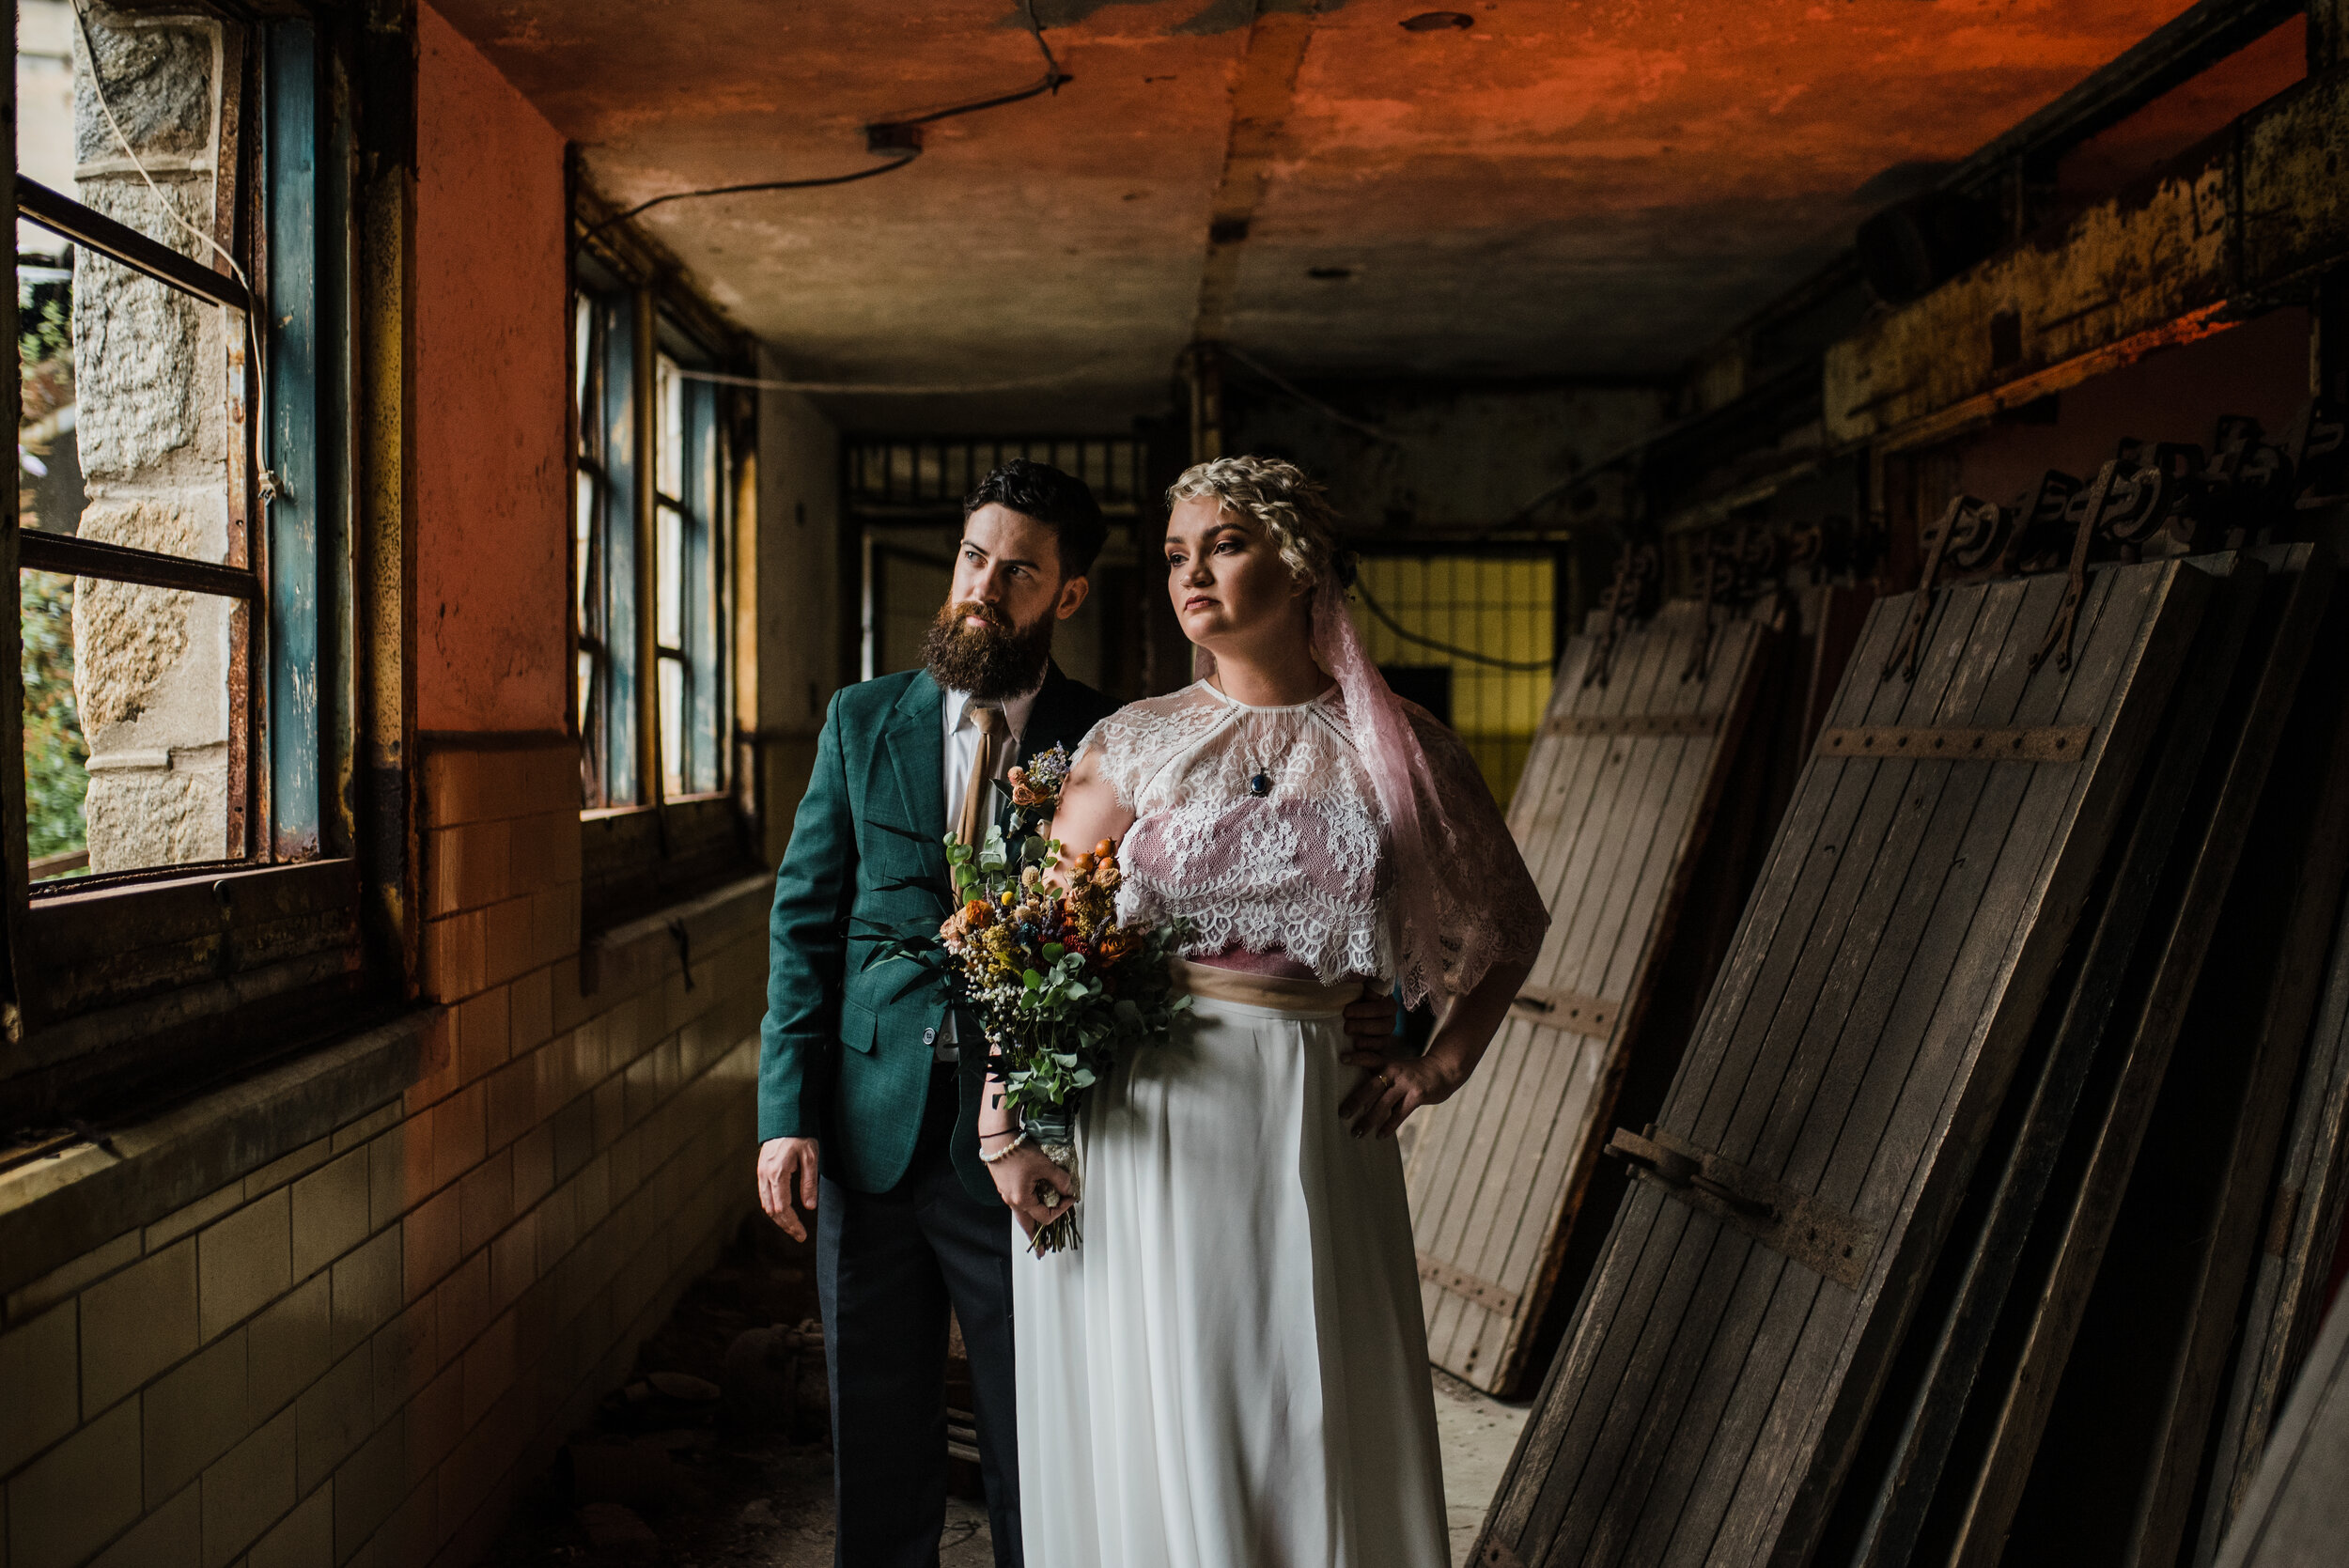 Wedding couple in a distressed building.